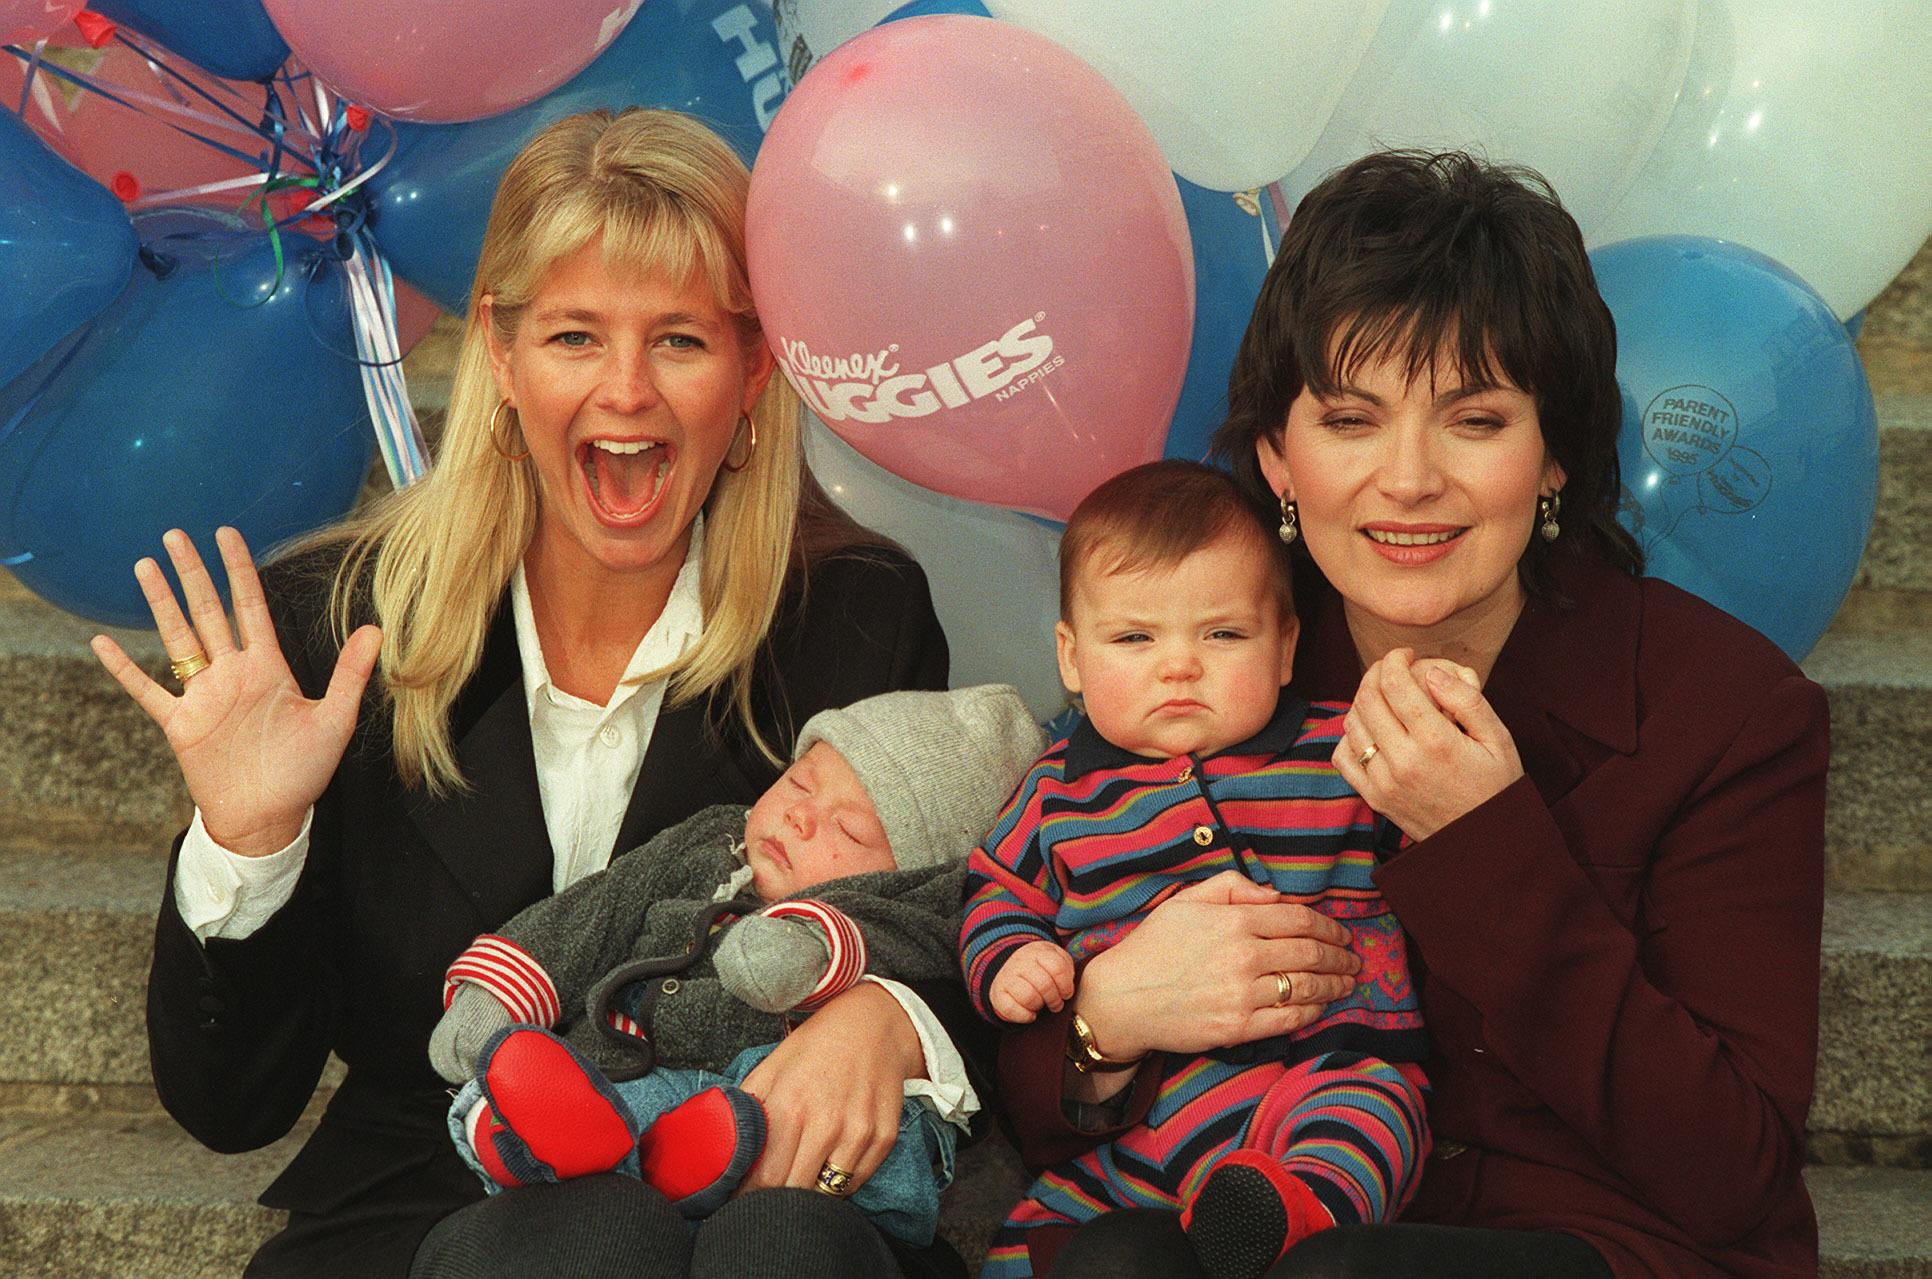 PA NEWS PHOTO 13/1/95  TV PRESENTER ULRIKA JONSSON (LEFT) WITH HER THREE-MONTH OLD SON CAMERON AND LORRAINE KELLY WITH HER SEVEN-MONTH OLD DAUGHTER ROSY AT THE LAUNCH OF TOMMY'S PARENT FRIENDLY AWARDS SUPPORTED BY KLEENEX/HUGGIES NAPPIES IN LONDON